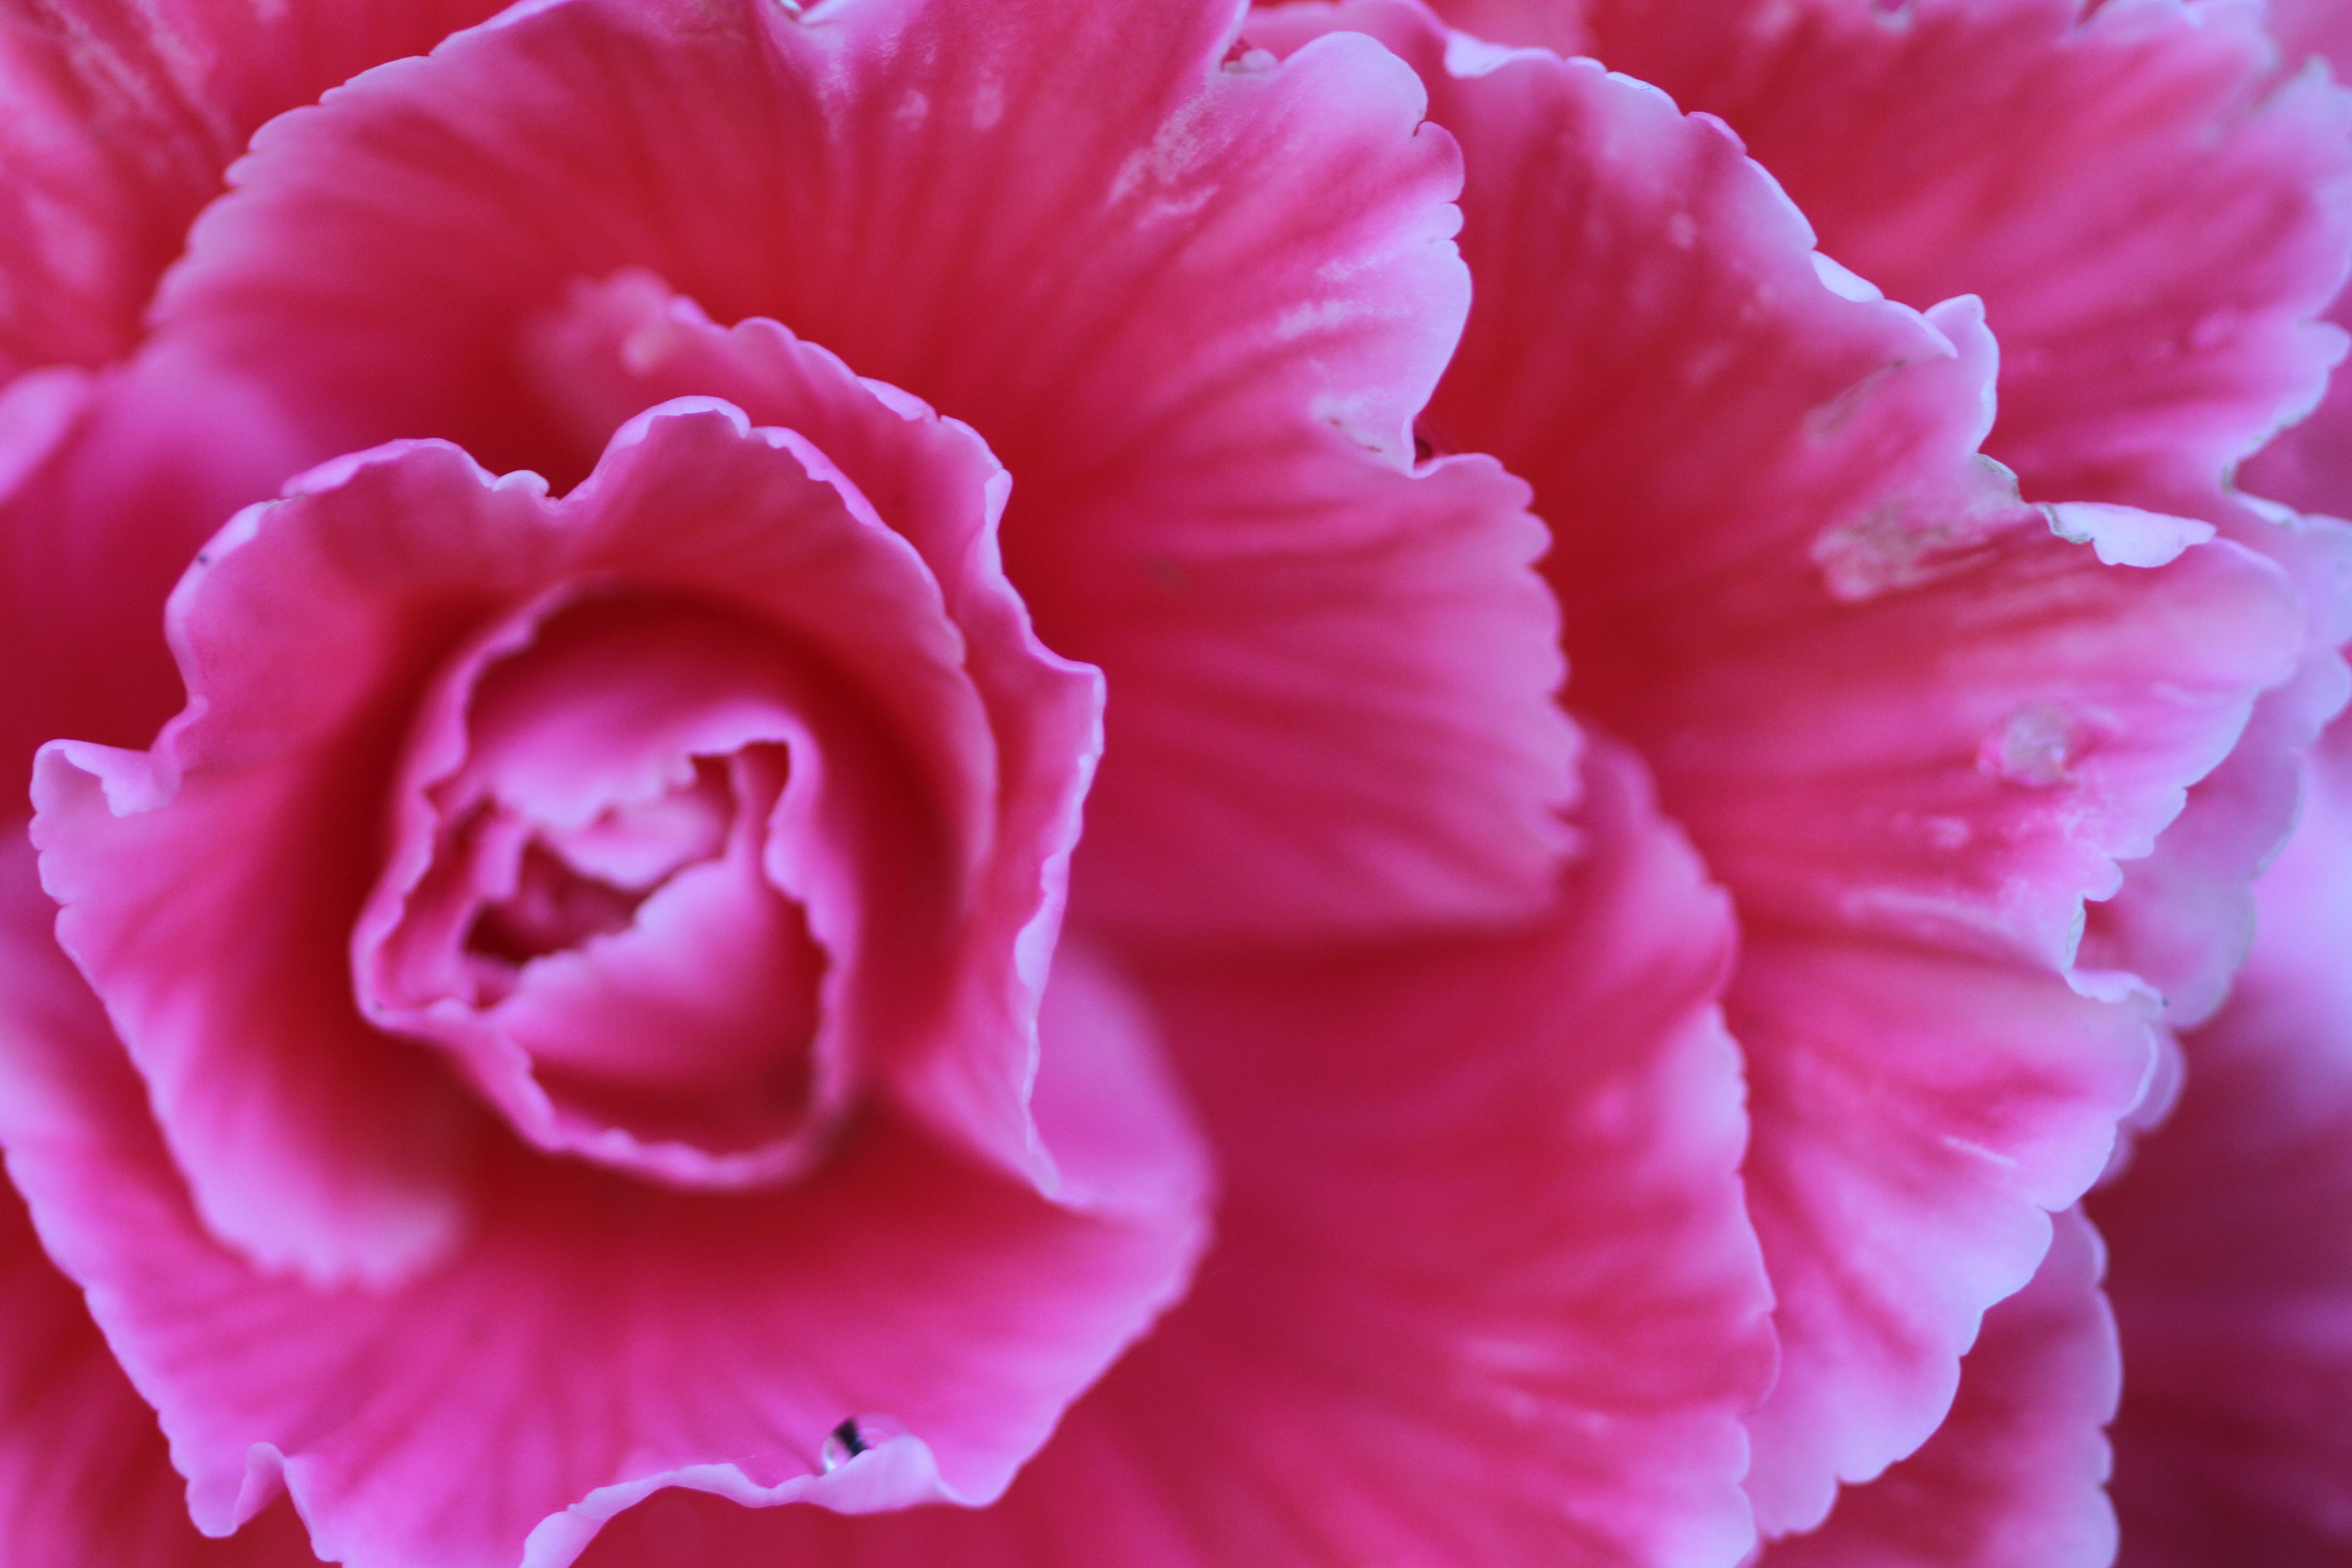 Closeup Photography Of Pink Carnation Flower